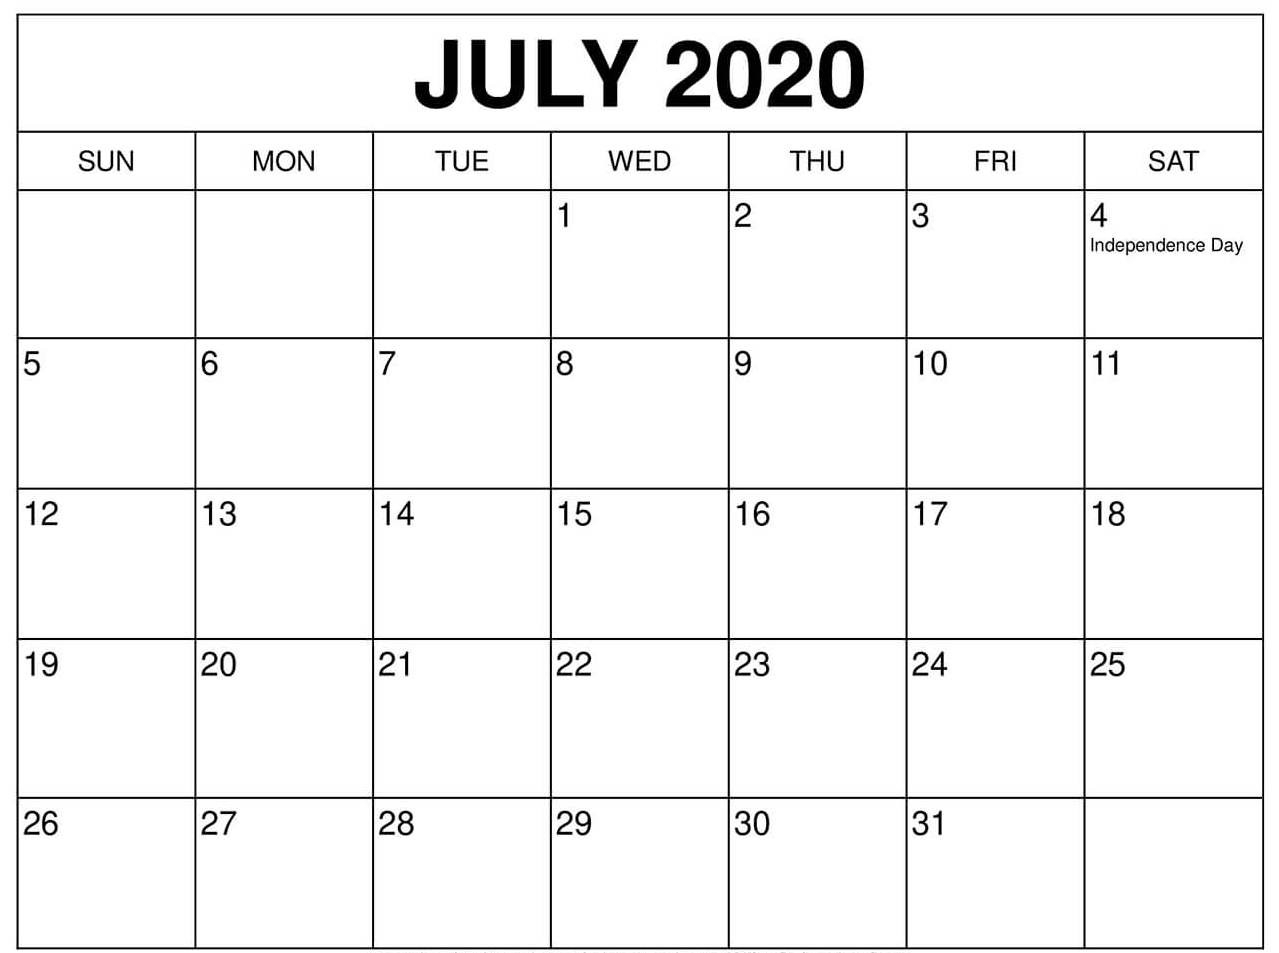 July 2020 Calendar Us Printable With Federal Holidays - Web-Nz School Holidays 2020